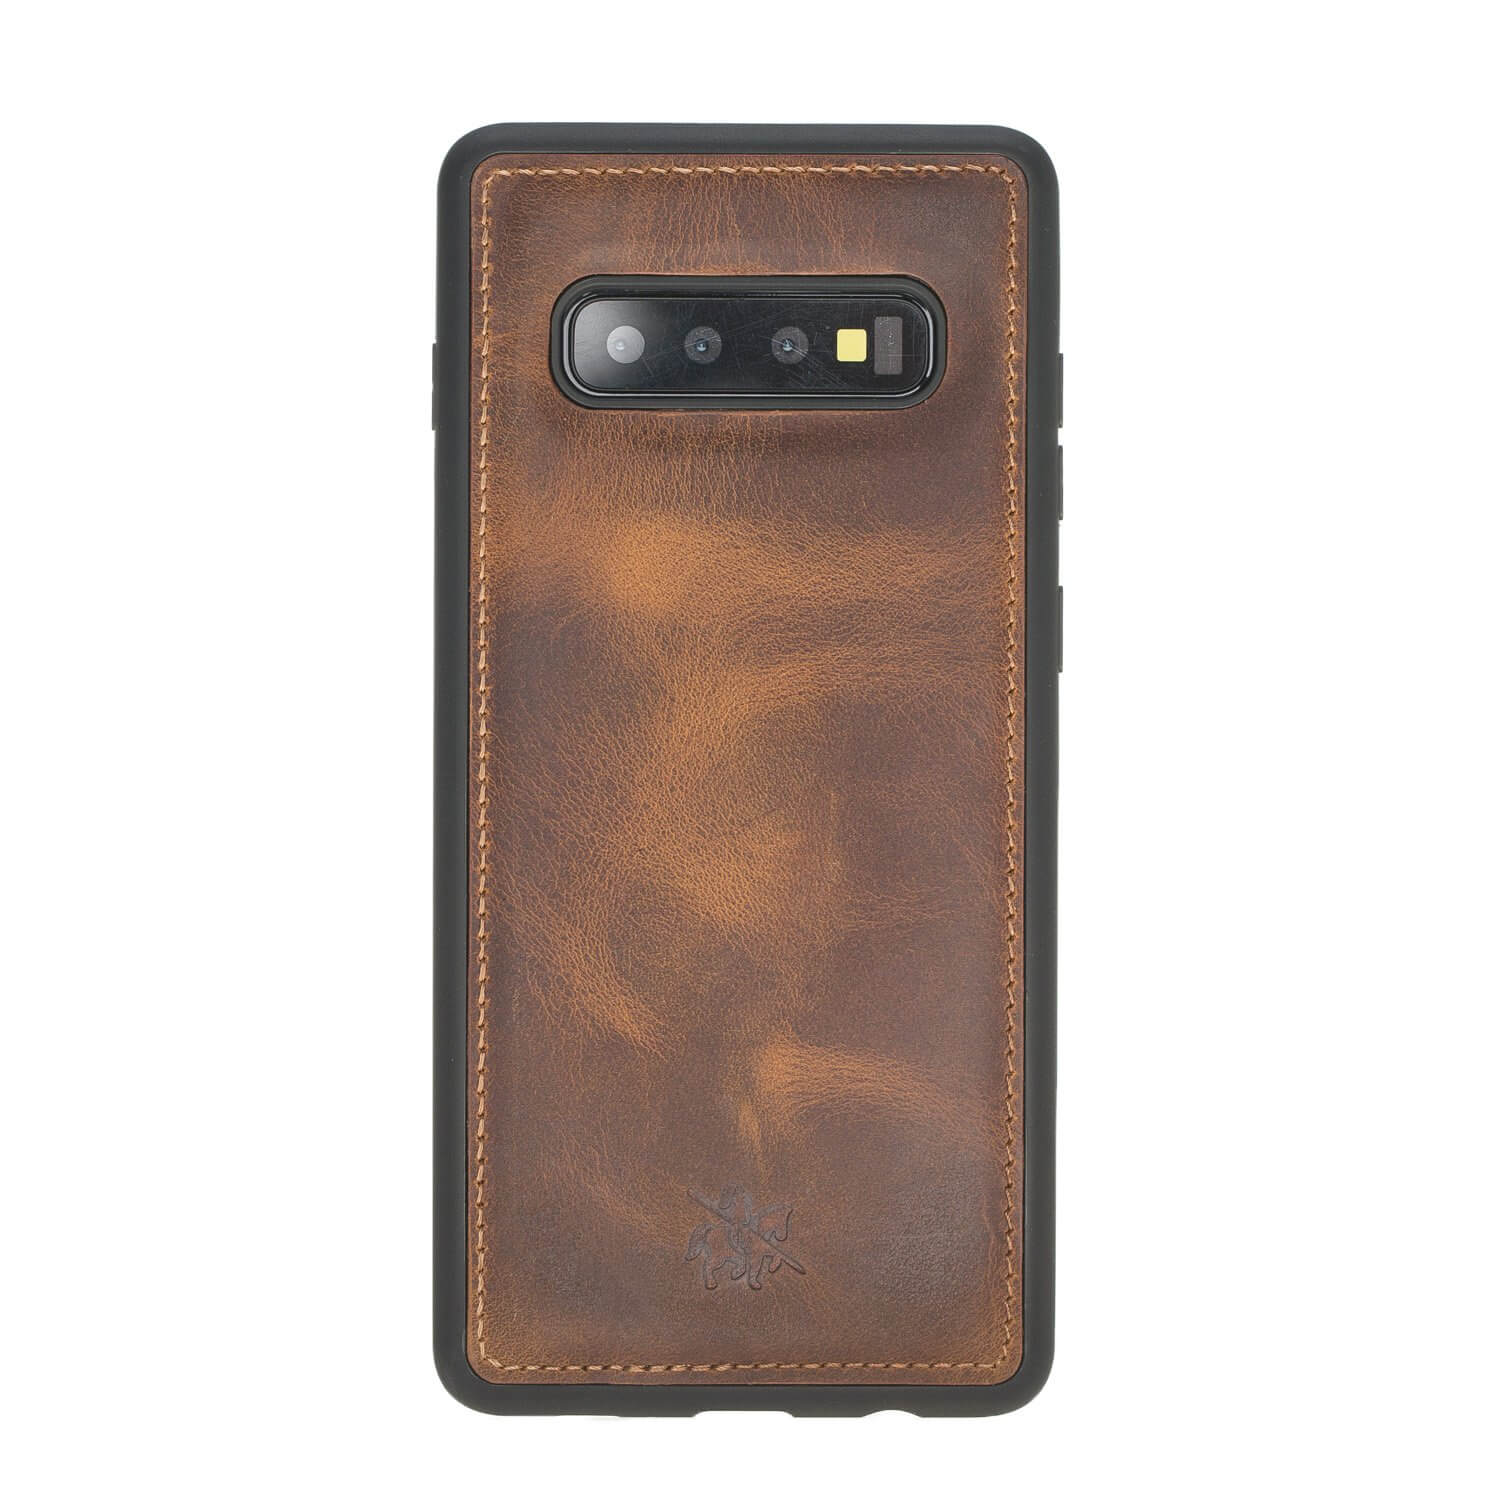 Lucca Snap On Leather Case for Samsung Galaxy S10 Plus